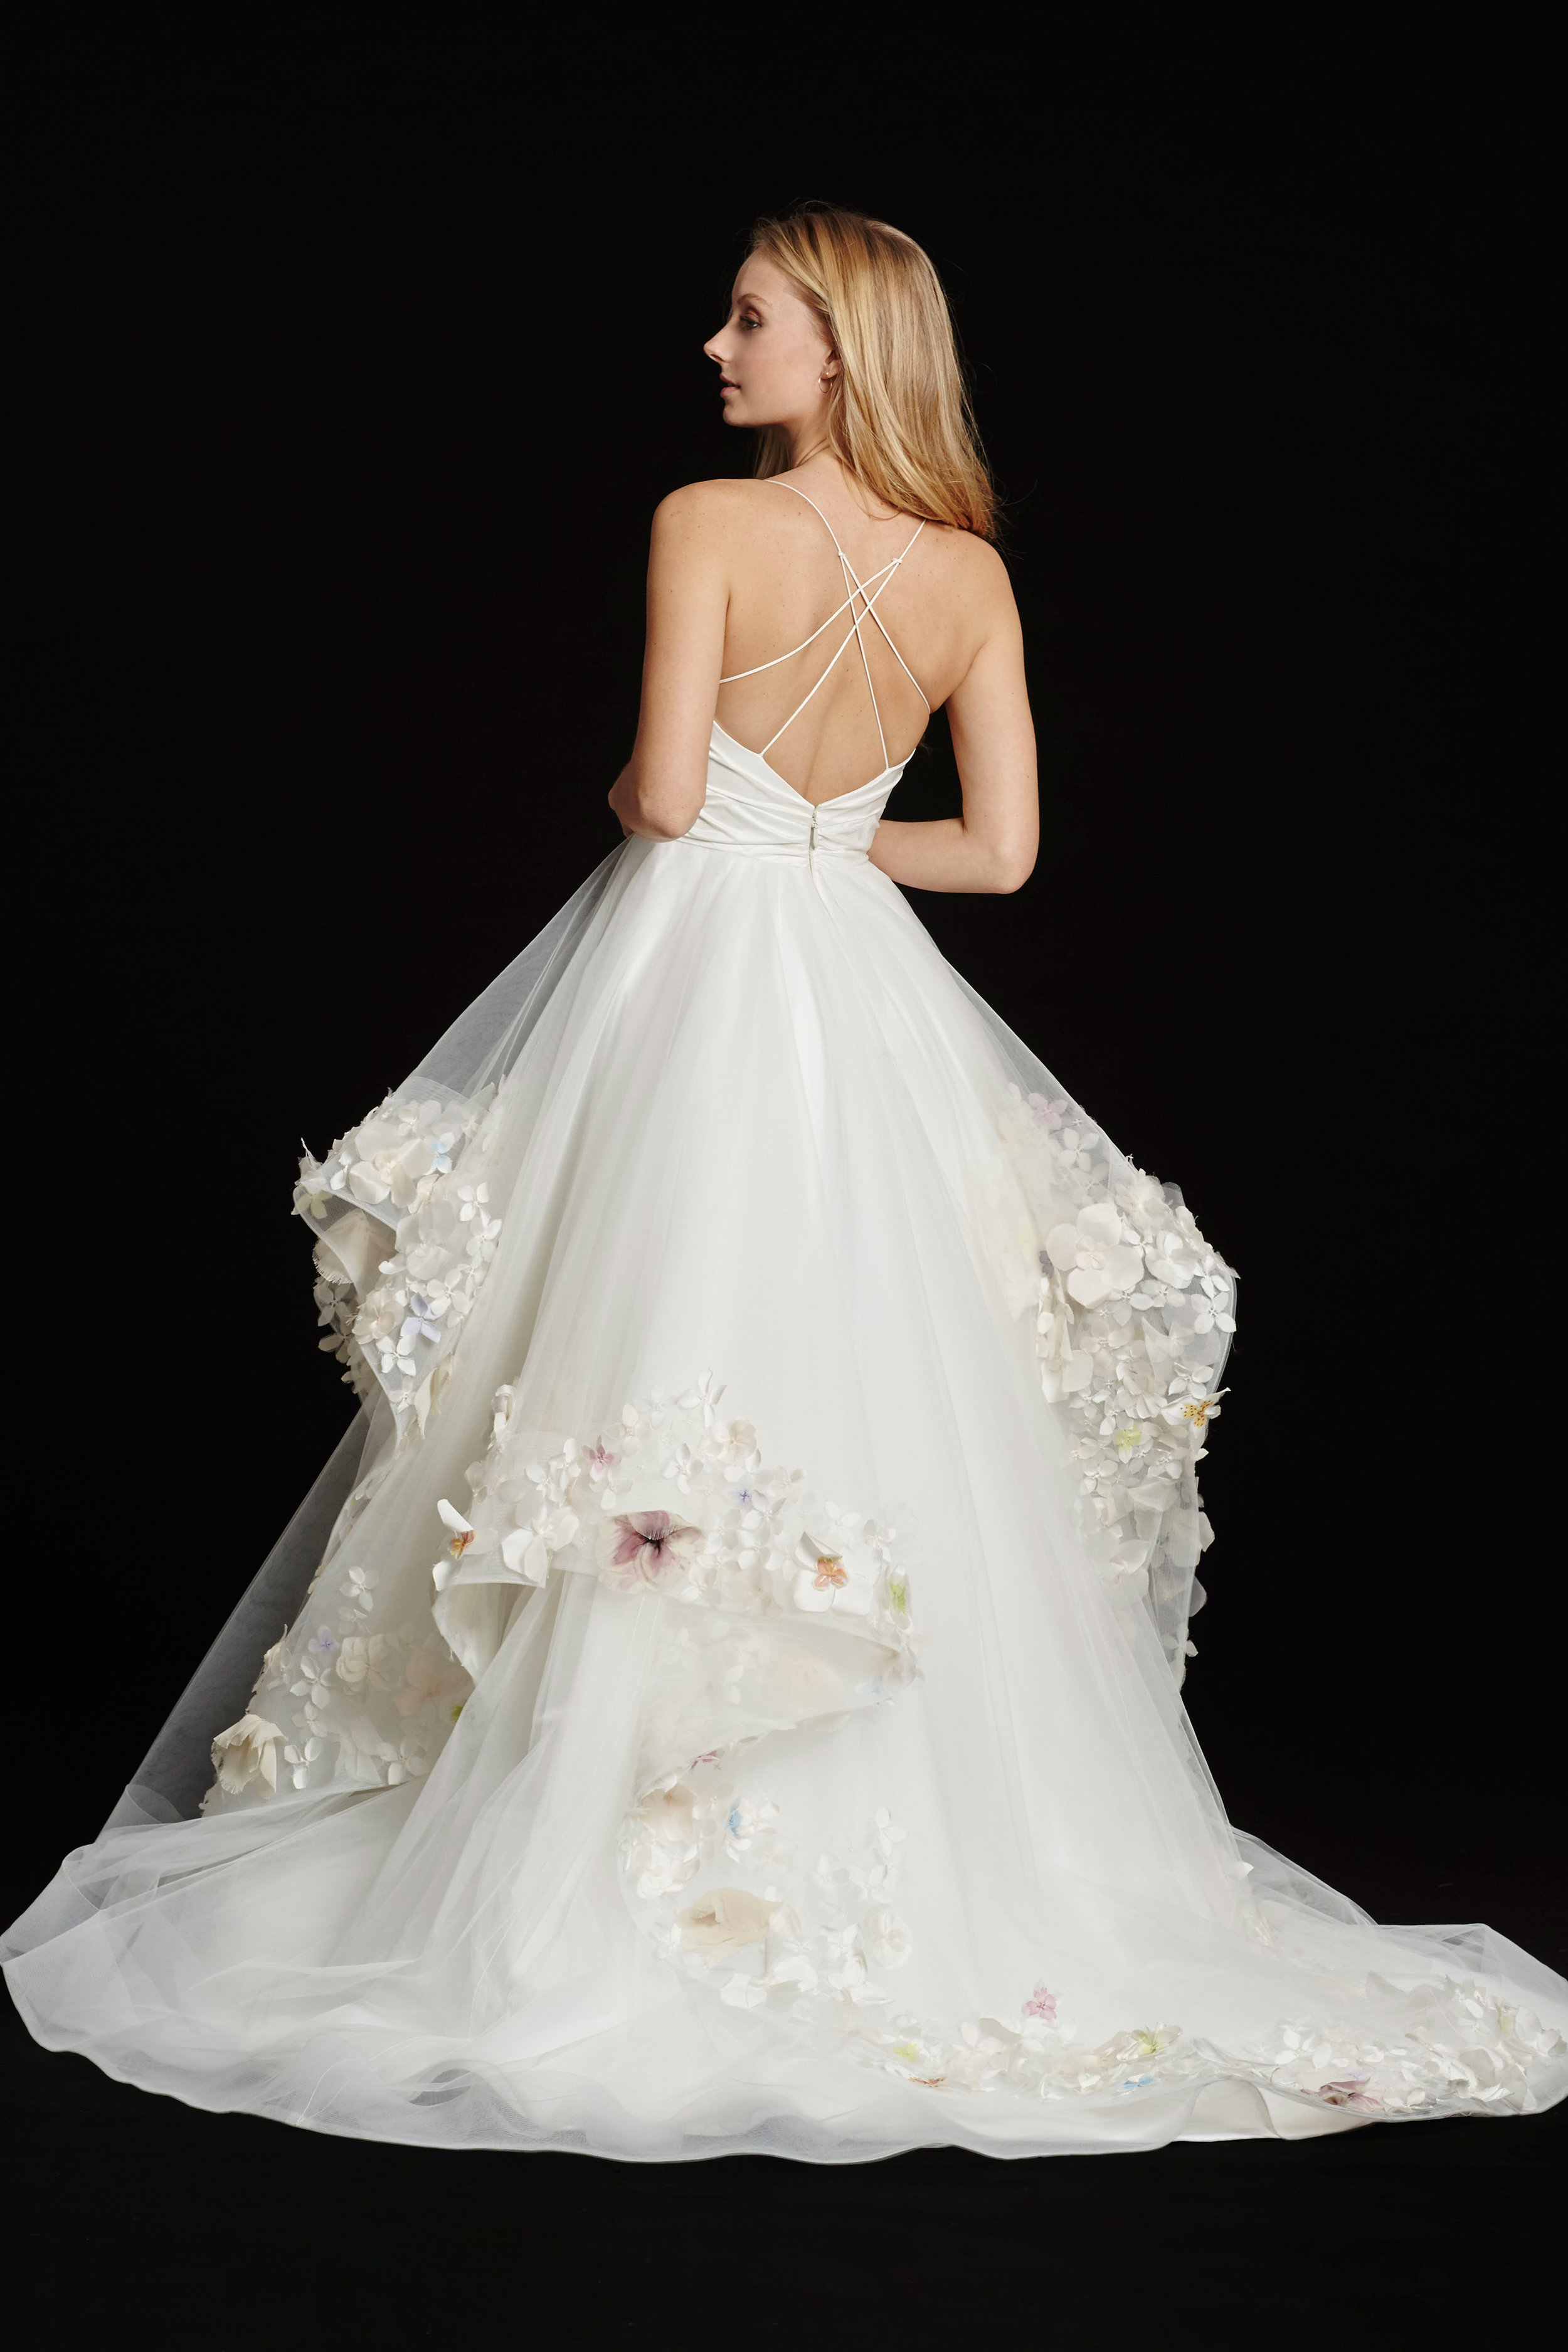 Bridal Gowns and Wedding Dresses by JLM Couture - Style 6601